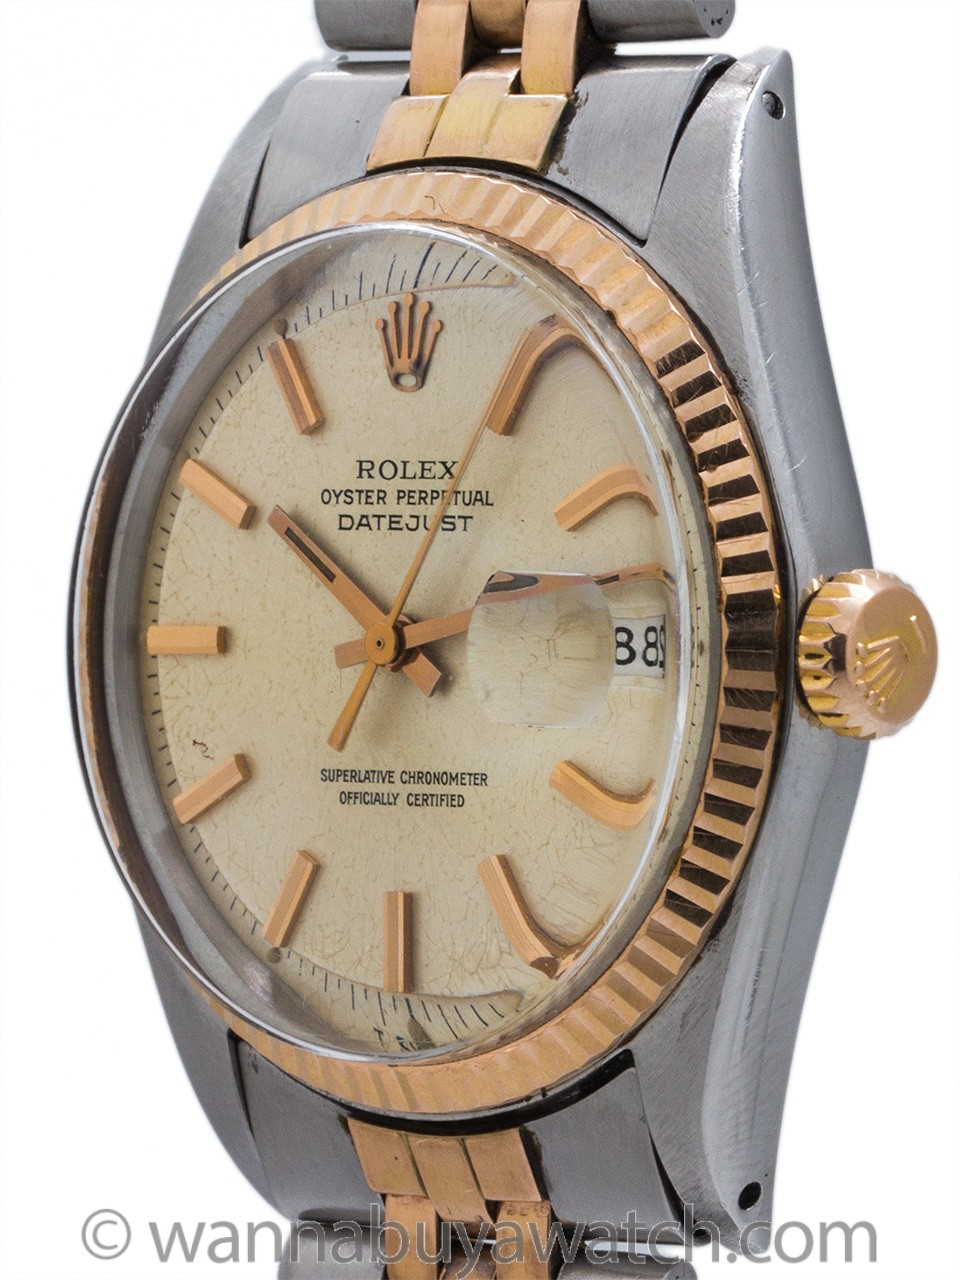 Rolex SS/14K Rose Gold Datejust ref 1601 circa 1972 Box & Papers